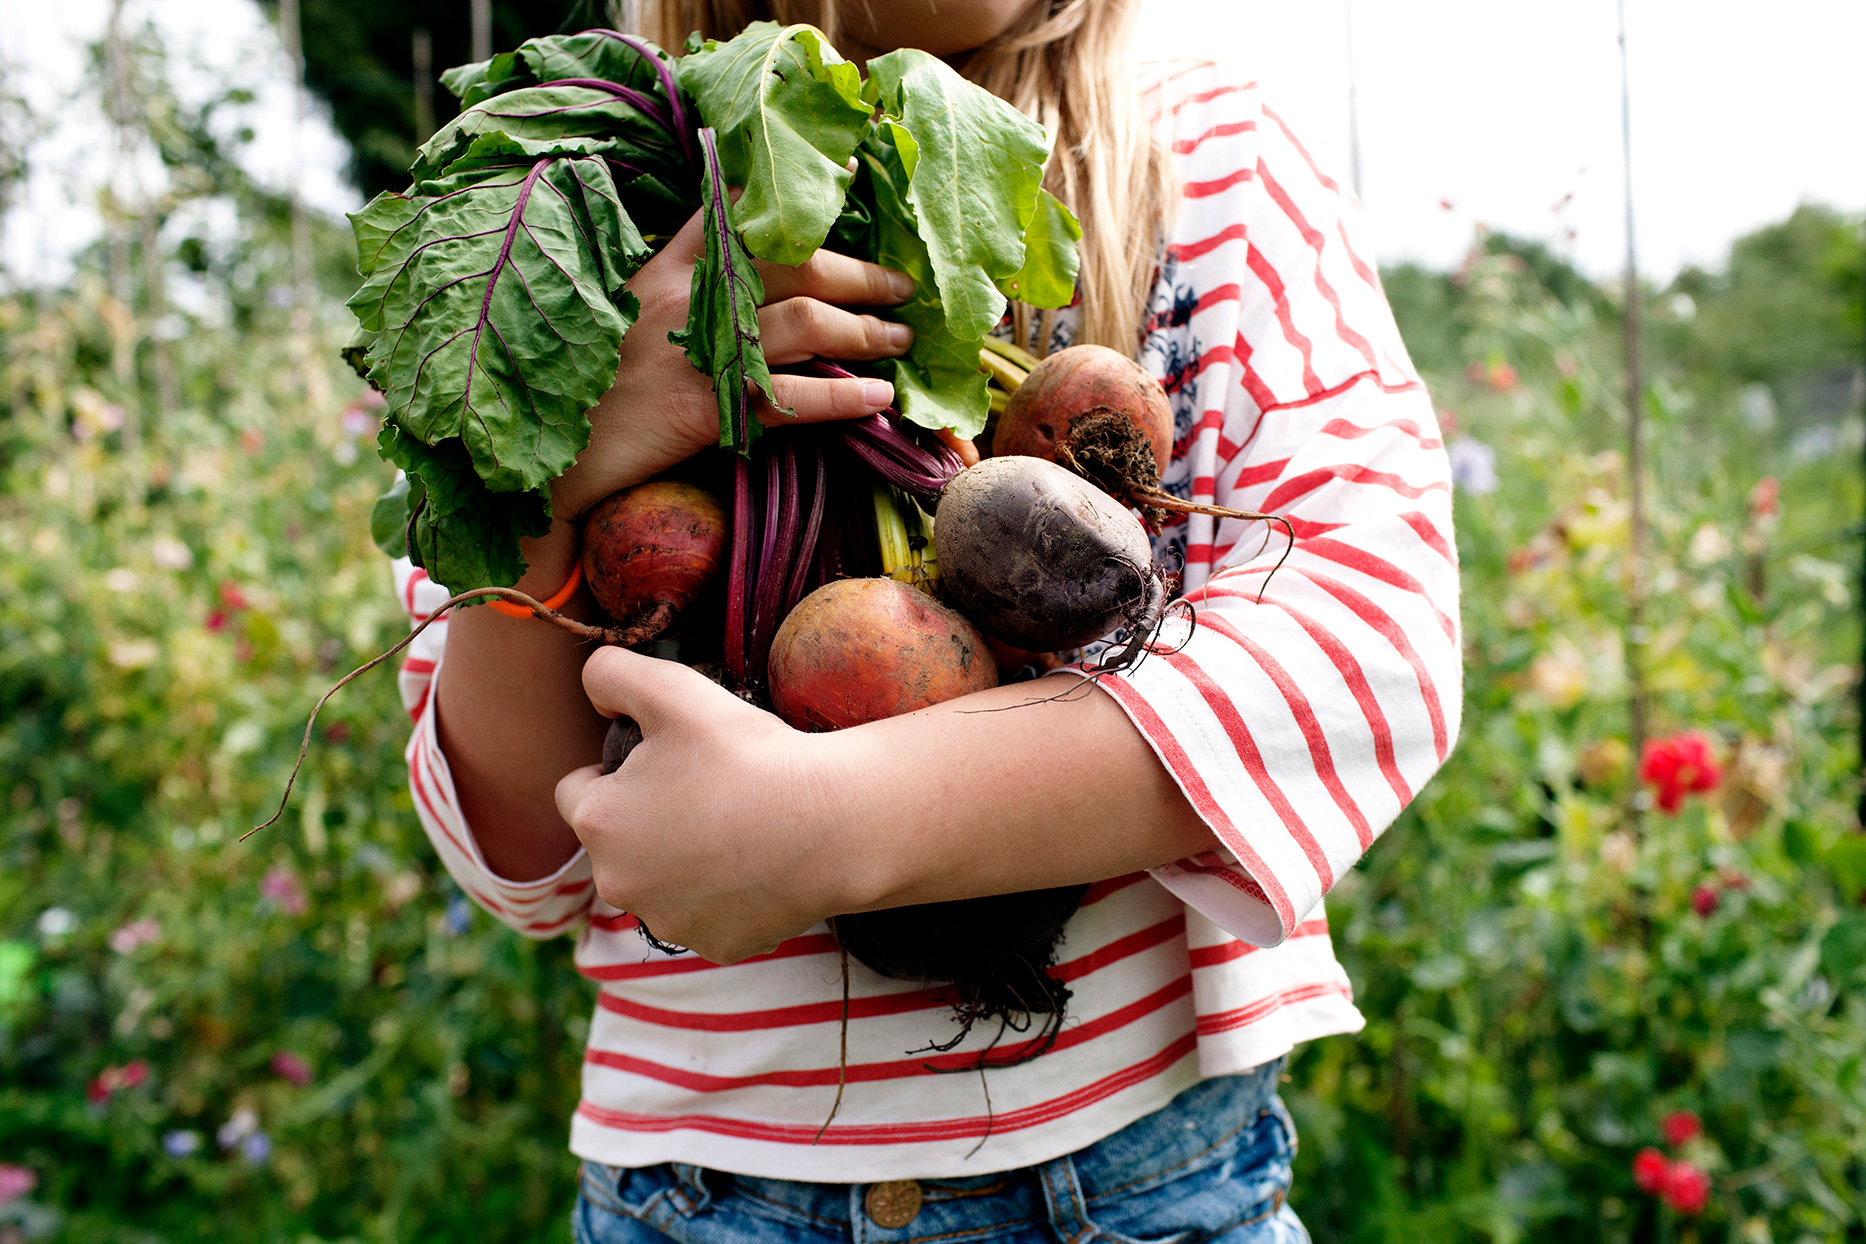 Child holding beets